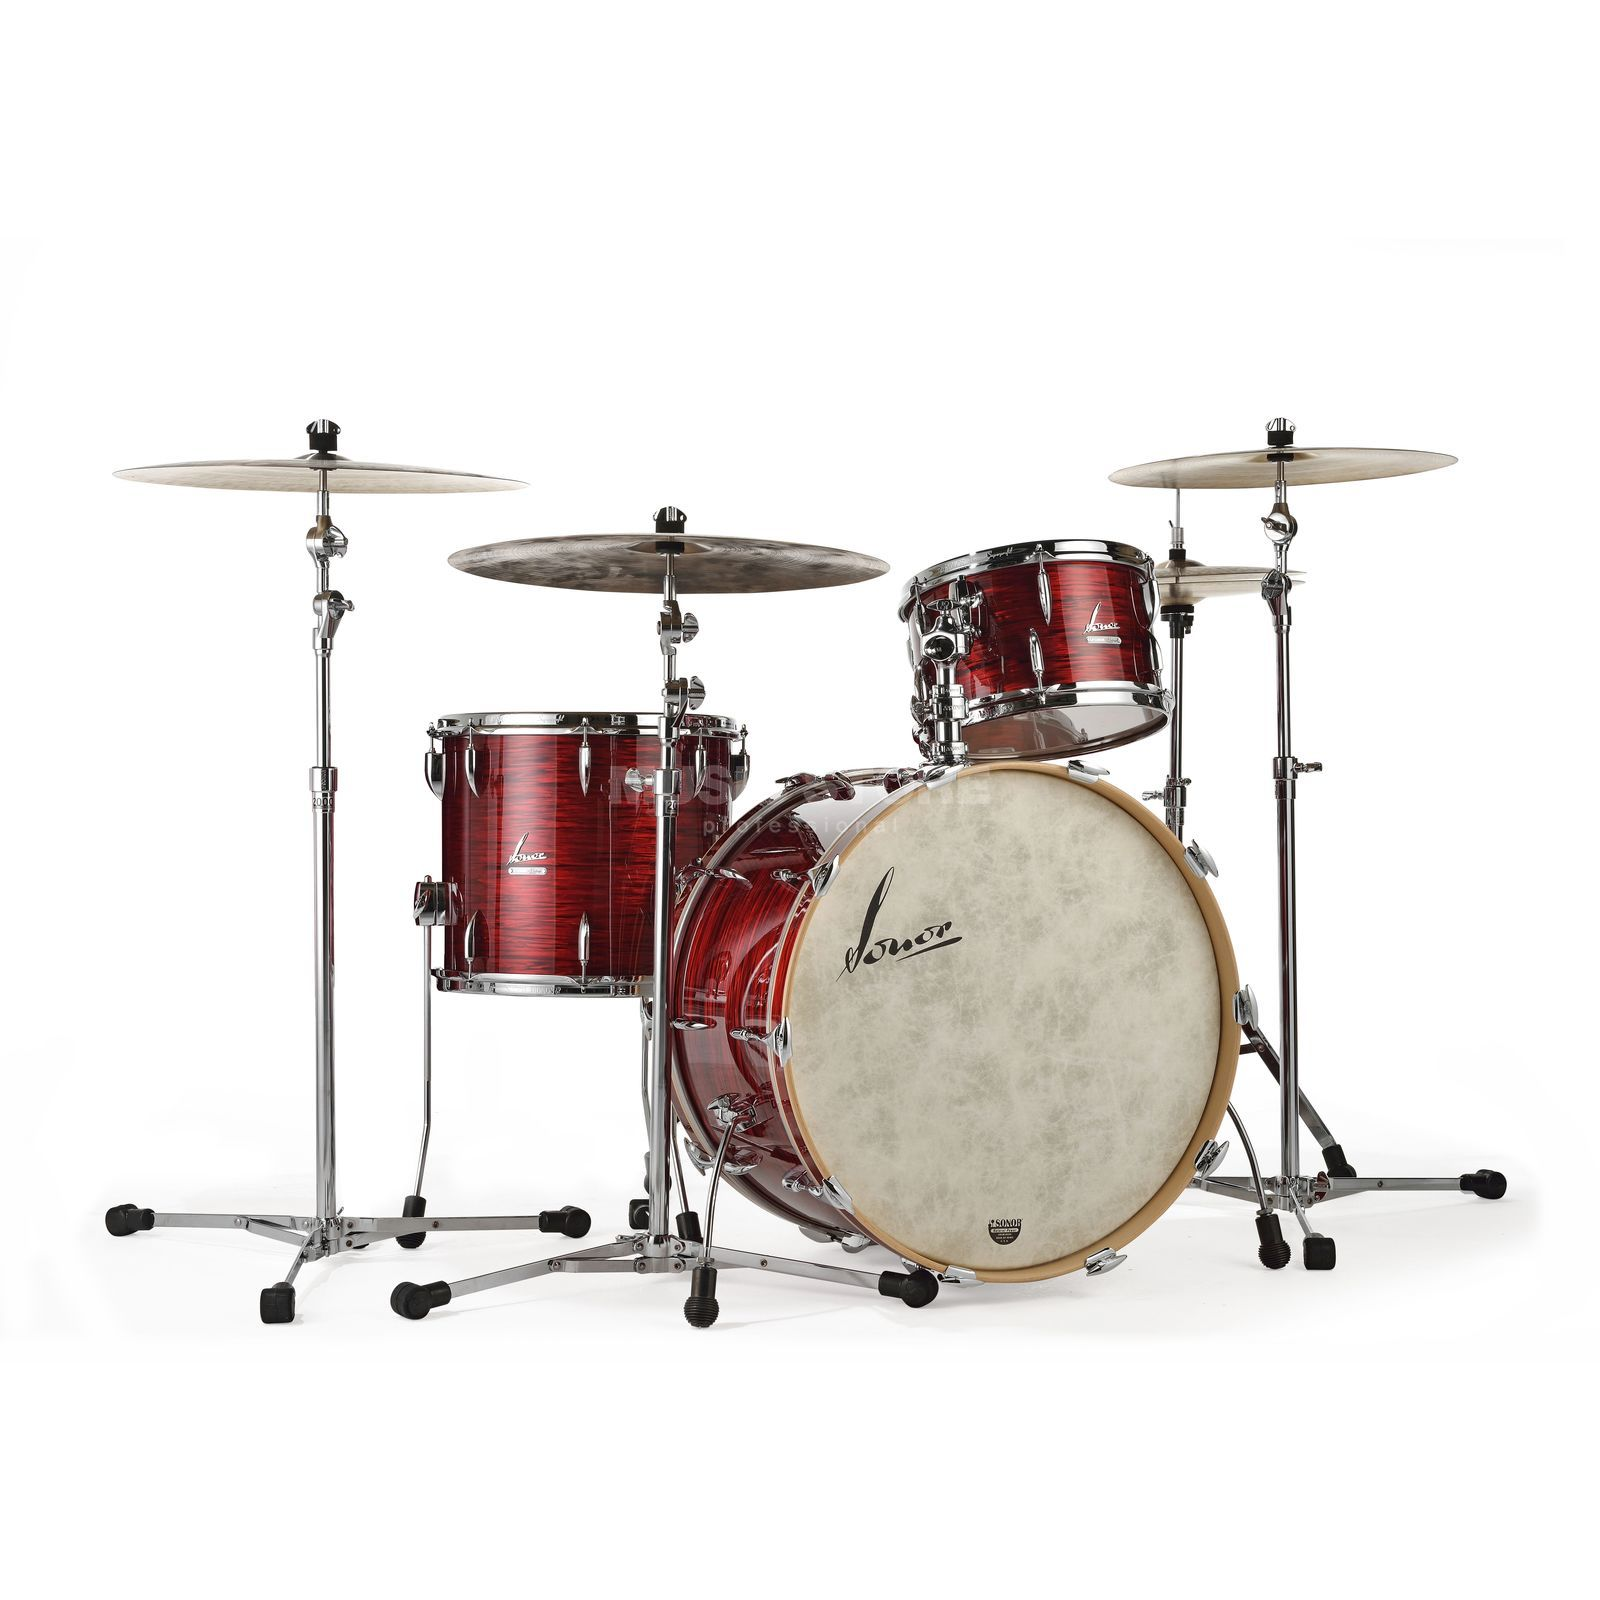 Sonor Vintage Series Three22, Vintage Red Oyster, w/mount Produktbild